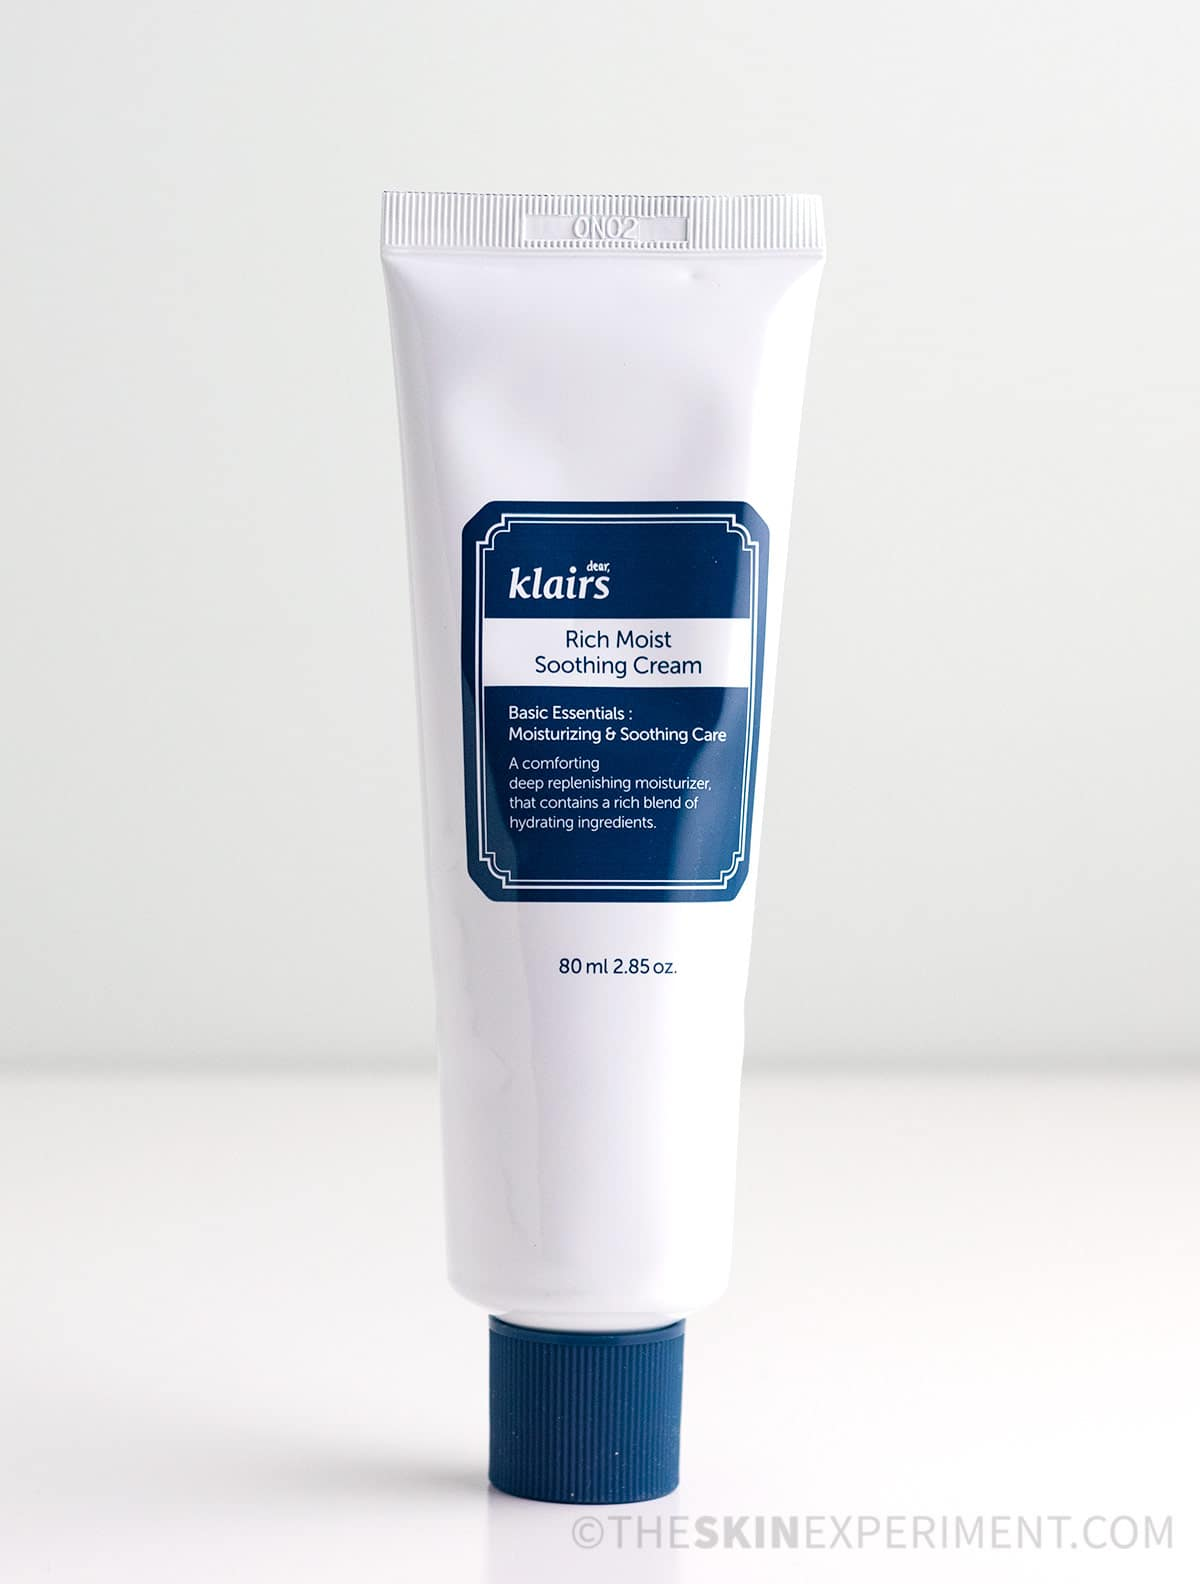 Klairs Rich Moist Soothing Cream Review